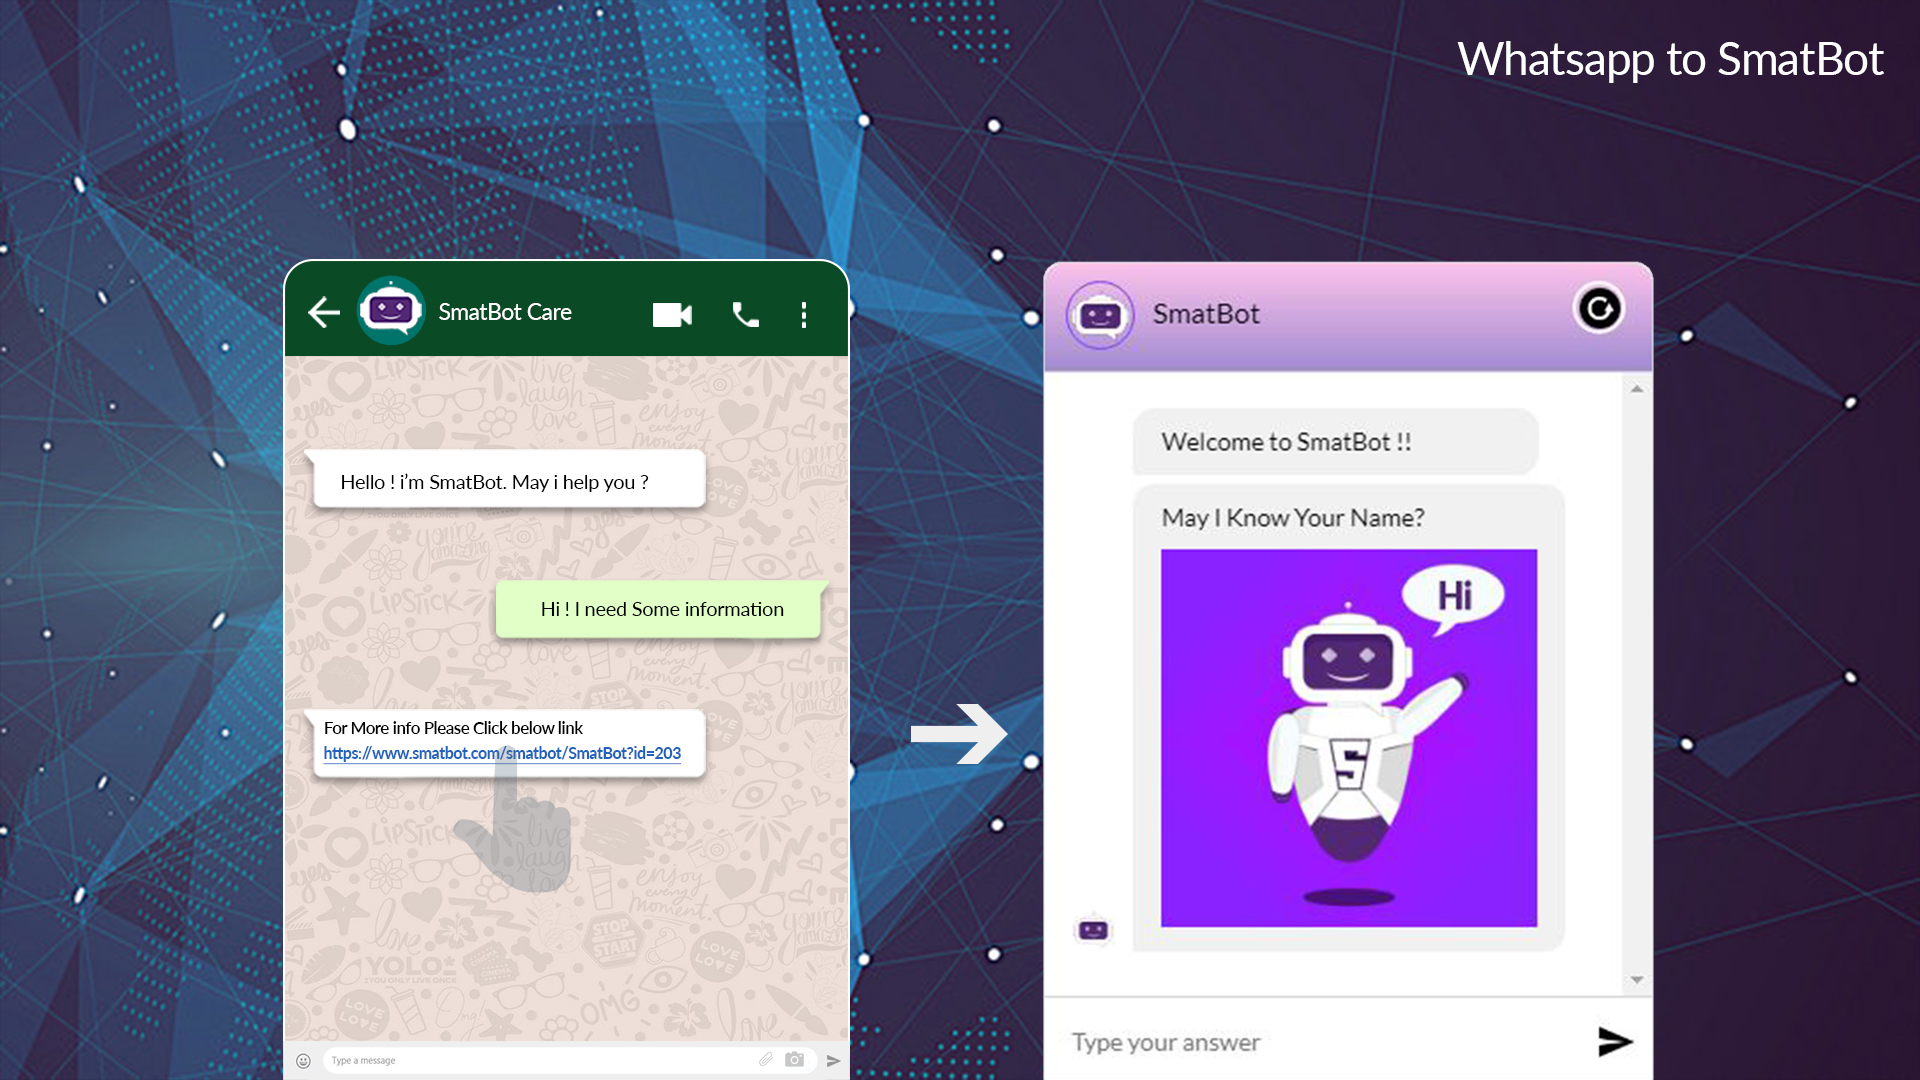 How to automate WhatsApp messaging through WhatsApp Business API